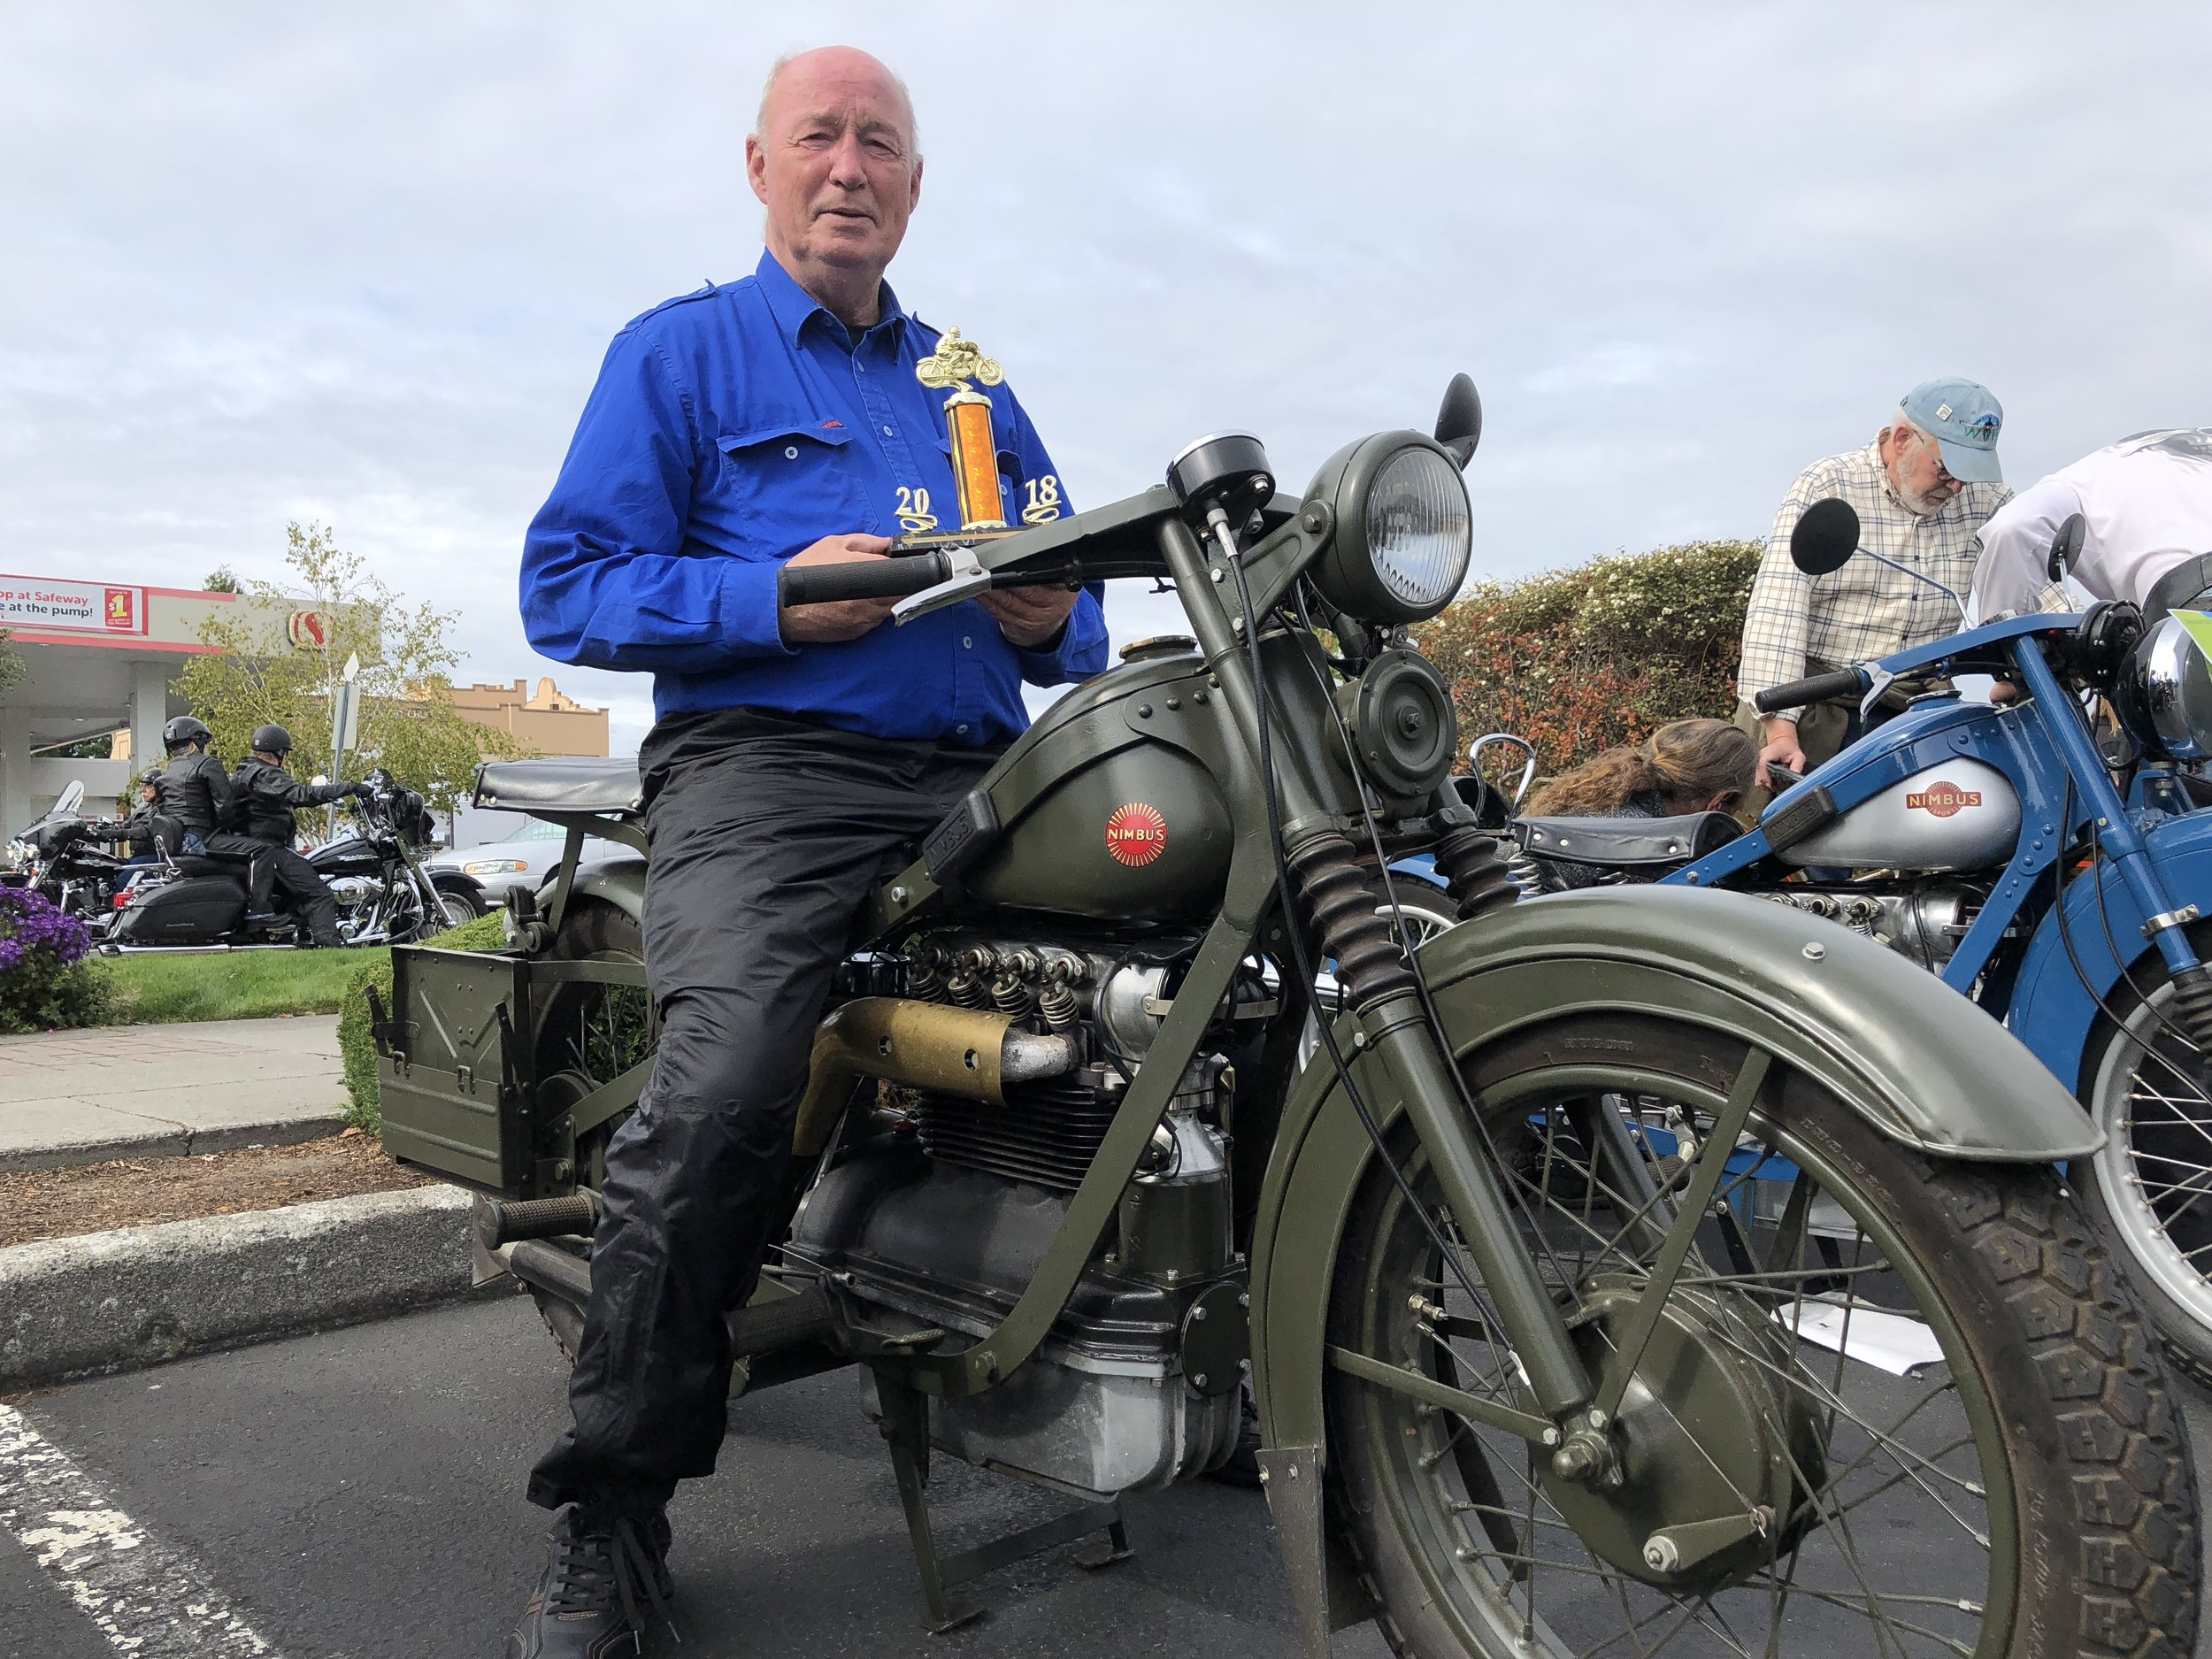 """Peter from Denmark & Nimbus, """"People's Choice"""" WVM Anacortes Vintage Motorcycle Show 2018"""